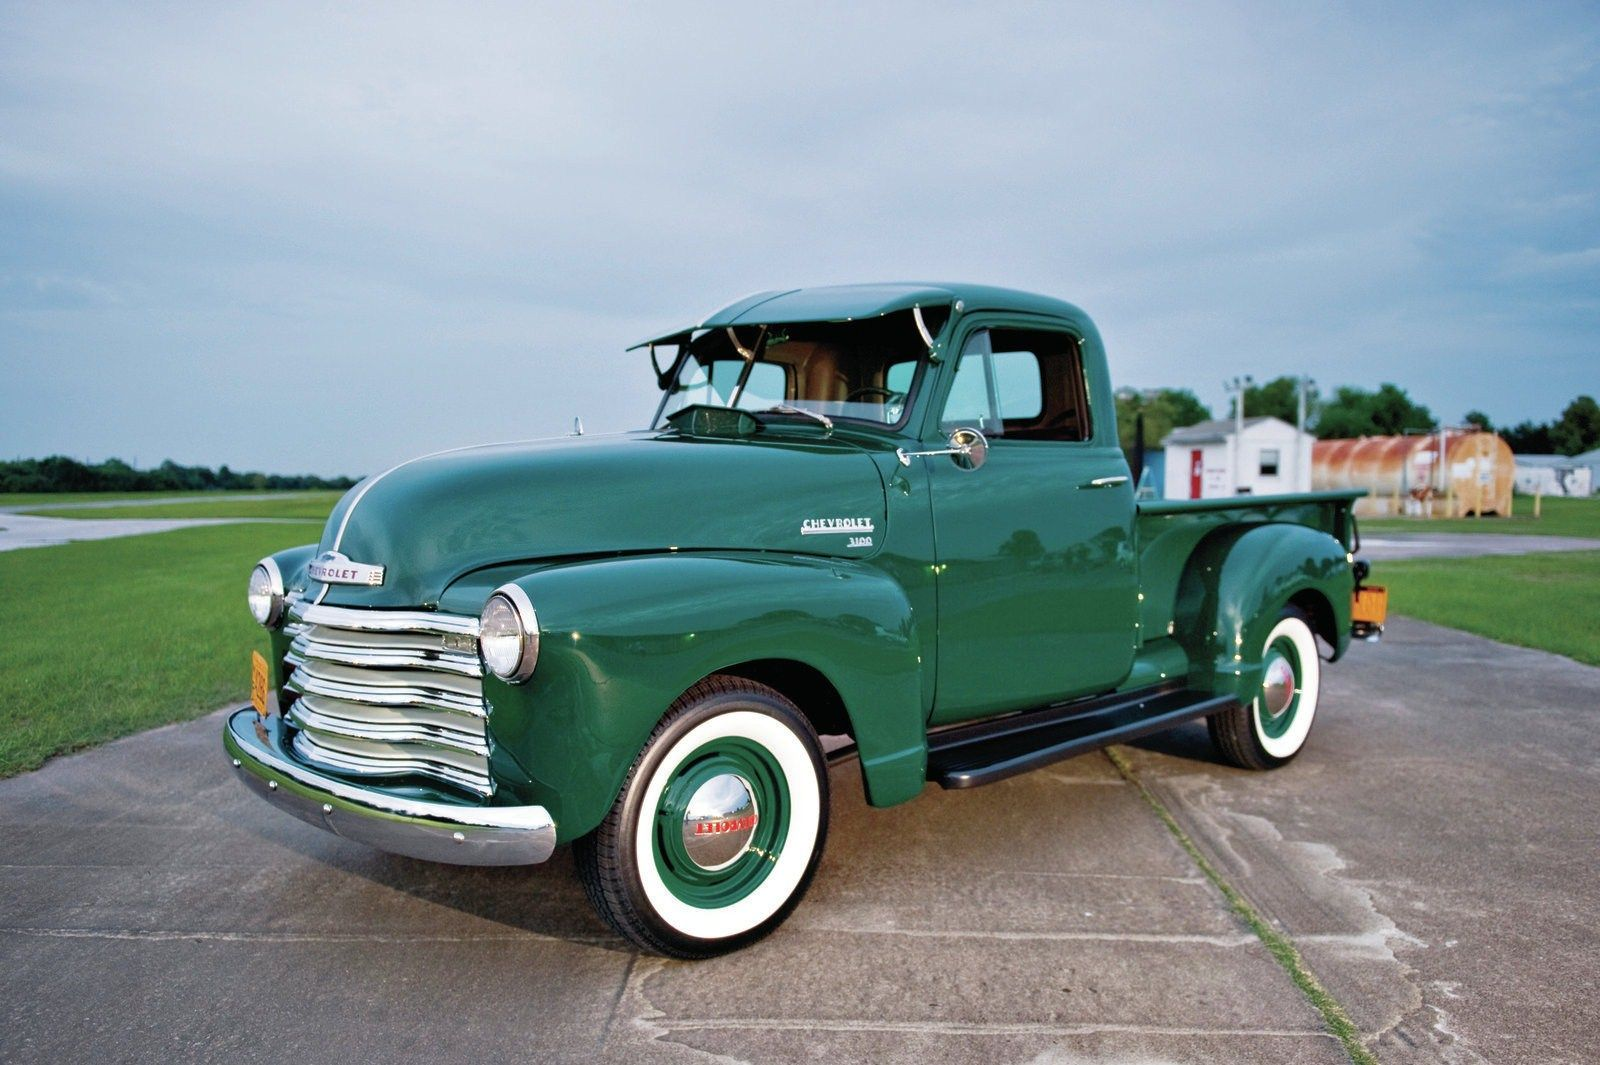 Clean advanced design chevy pickup with wood stake bed add ons that look so classy vehicles advanced design chevy gmc pinterest chevy pickups